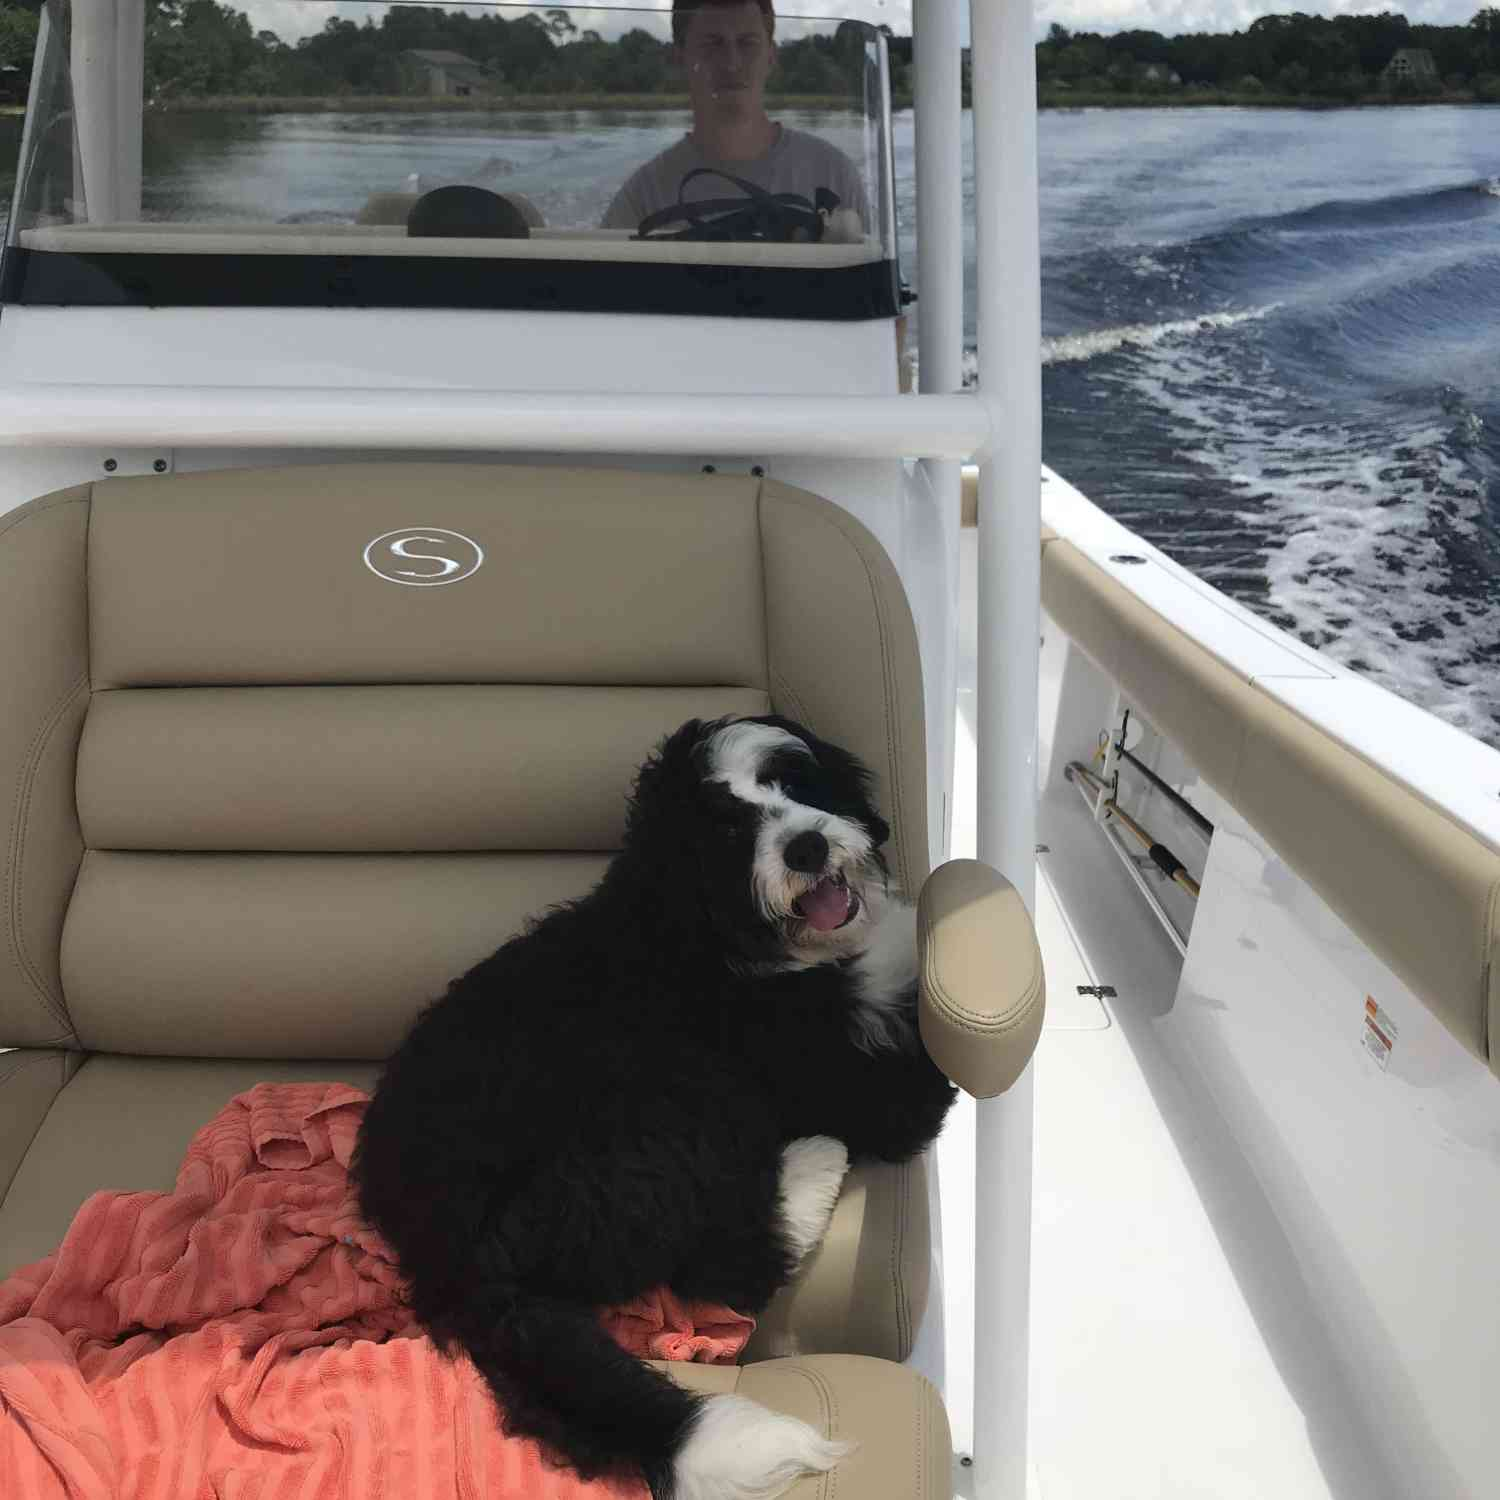 Title: Sportsman Pup - On board their Sportsman Open 282TE Center Console - Location: Theodore,Al. Participating in the Photo Contest #SportsmanNovember2018